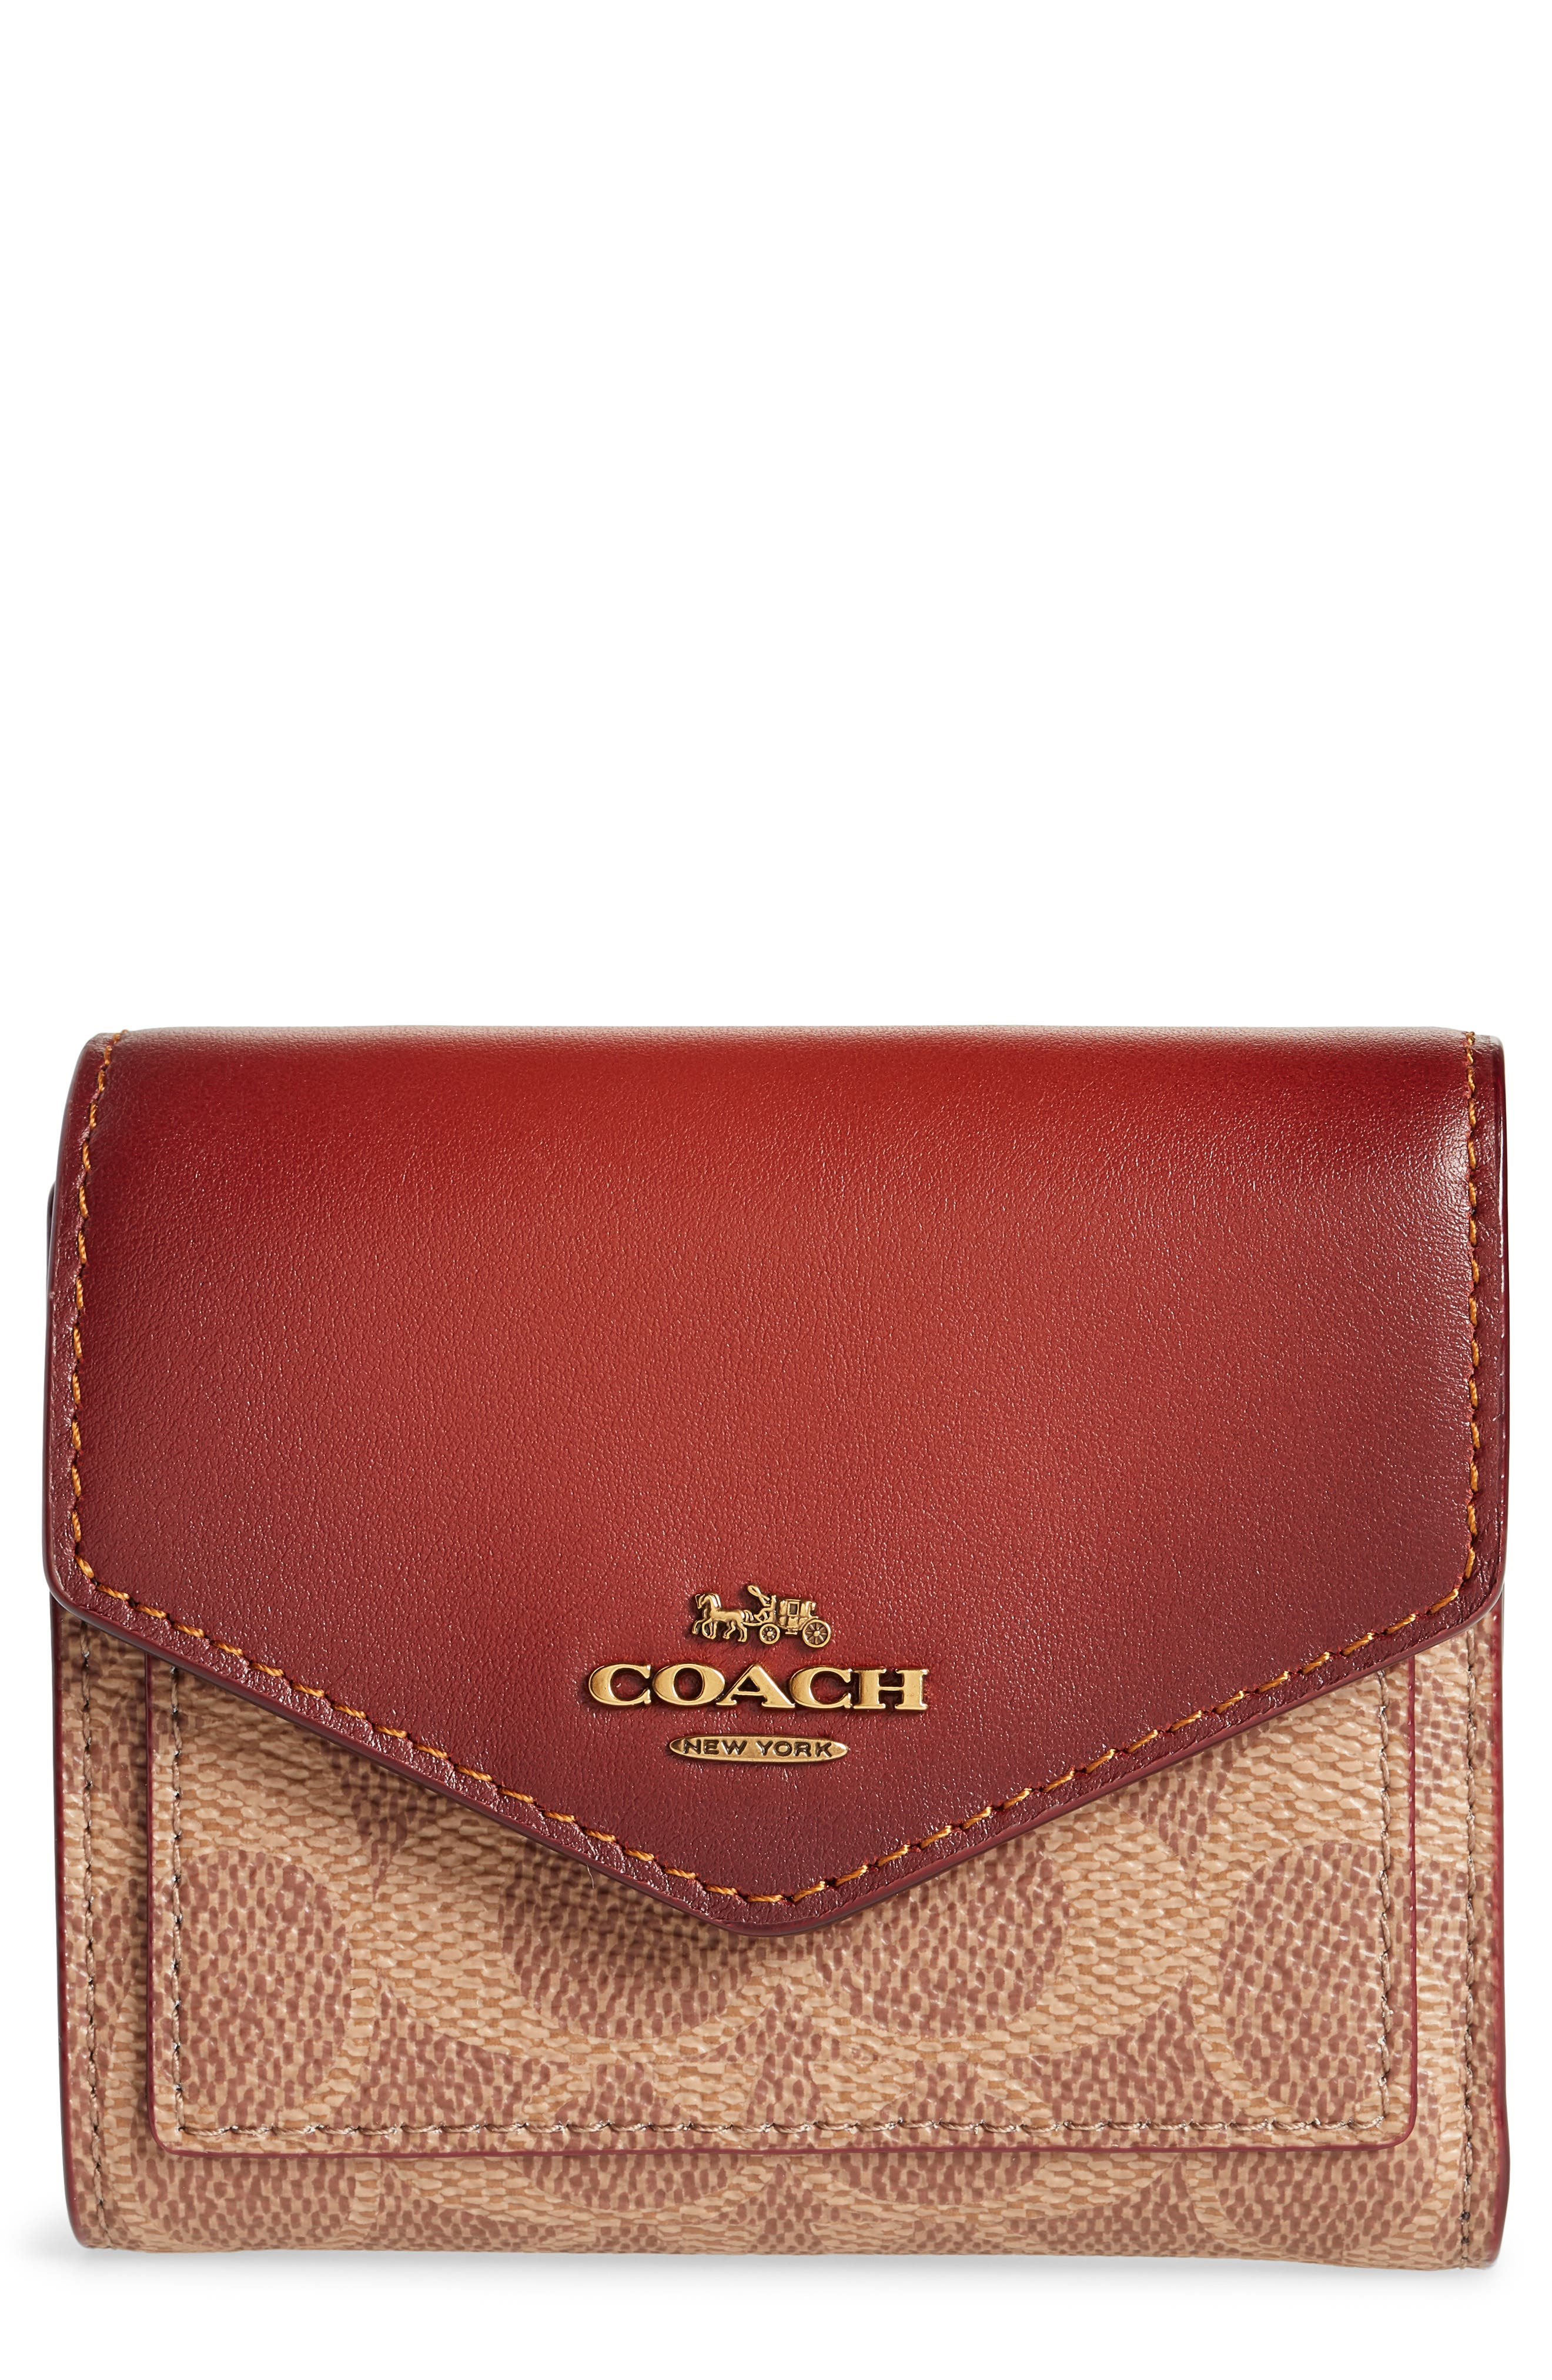 COACH Colorblock Coated Canvas & Leather Flap Wallet, Main, color, 201